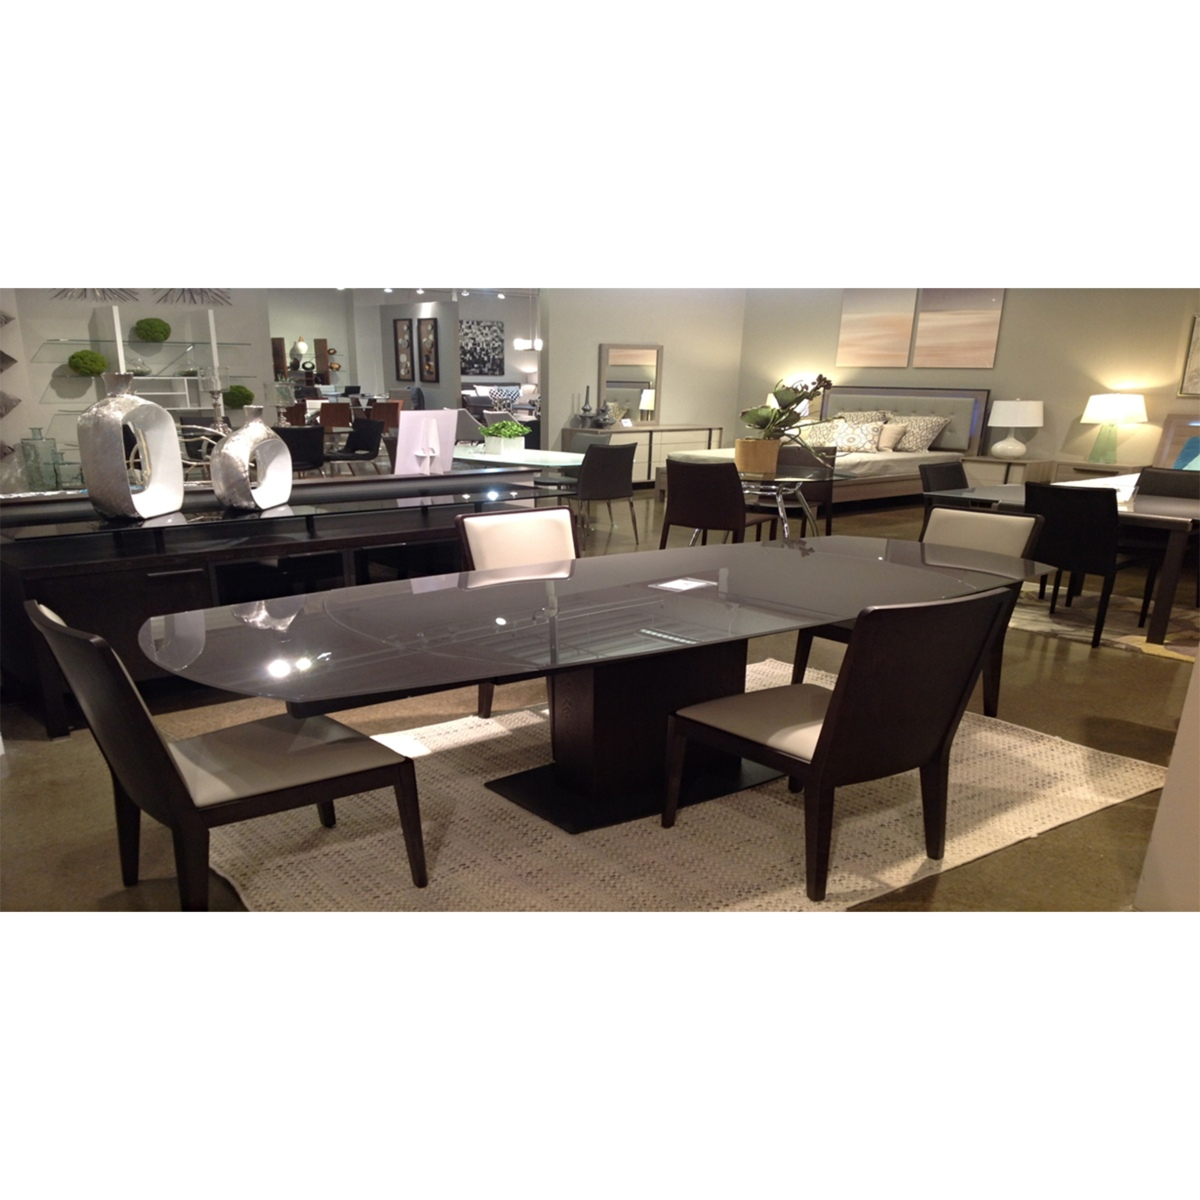 Modena Extendable Dining Table Pertaining To Most Current Mateo Extending Dining Tables (View 8 of 25)